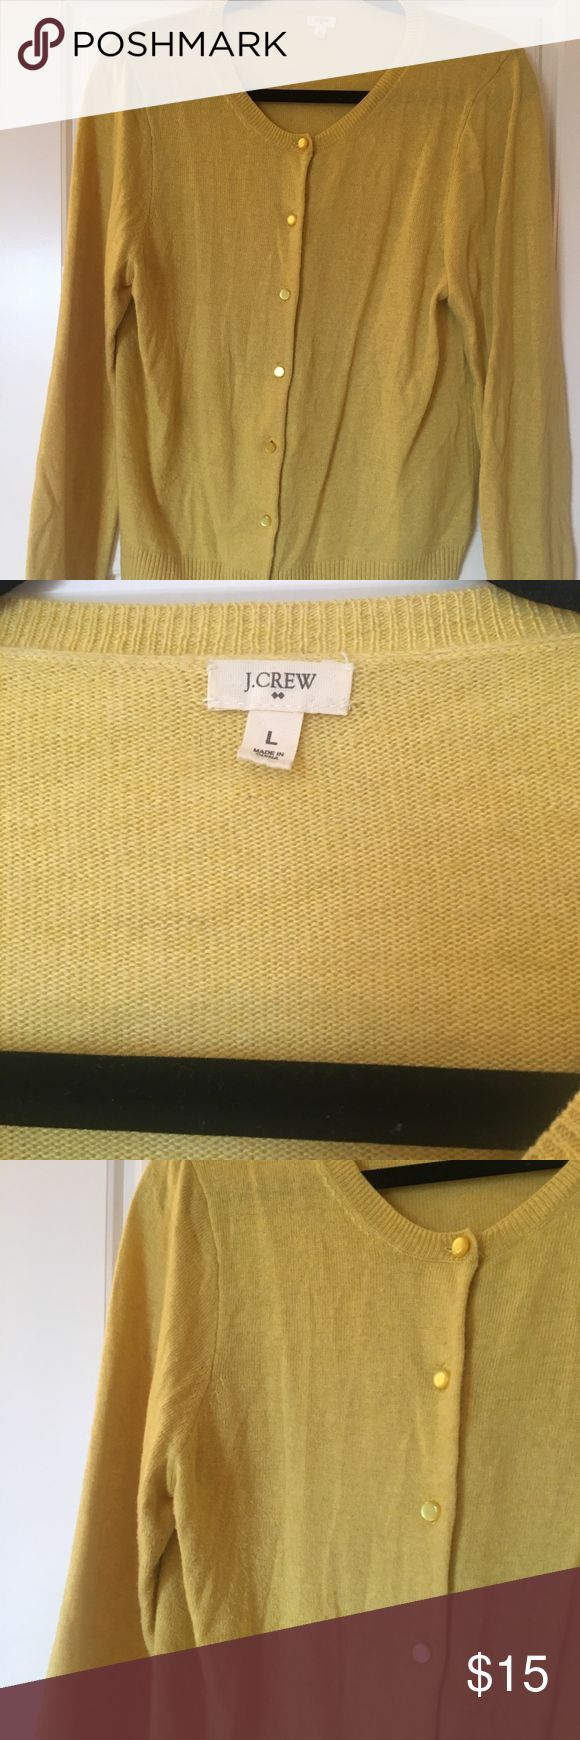 "Pretty Gold Yellow J Crew Factory Cardigan Size L Very pretty and unique gold/yellow cardigan from J Crew Factory! Size L, made of viscose/nylon/wool/alpaca, and super cute on! Throw it over a button-up, a t-shirt, or wear it buttoned up on its own! Not a color seen very often, it's a gorgeous light golden yellow, and would look beautiful in any season. Slight signs of wear under arms, but that's pretty typical for items made of wool, all it needs is a minor ""shaving"" to remove any of the…"